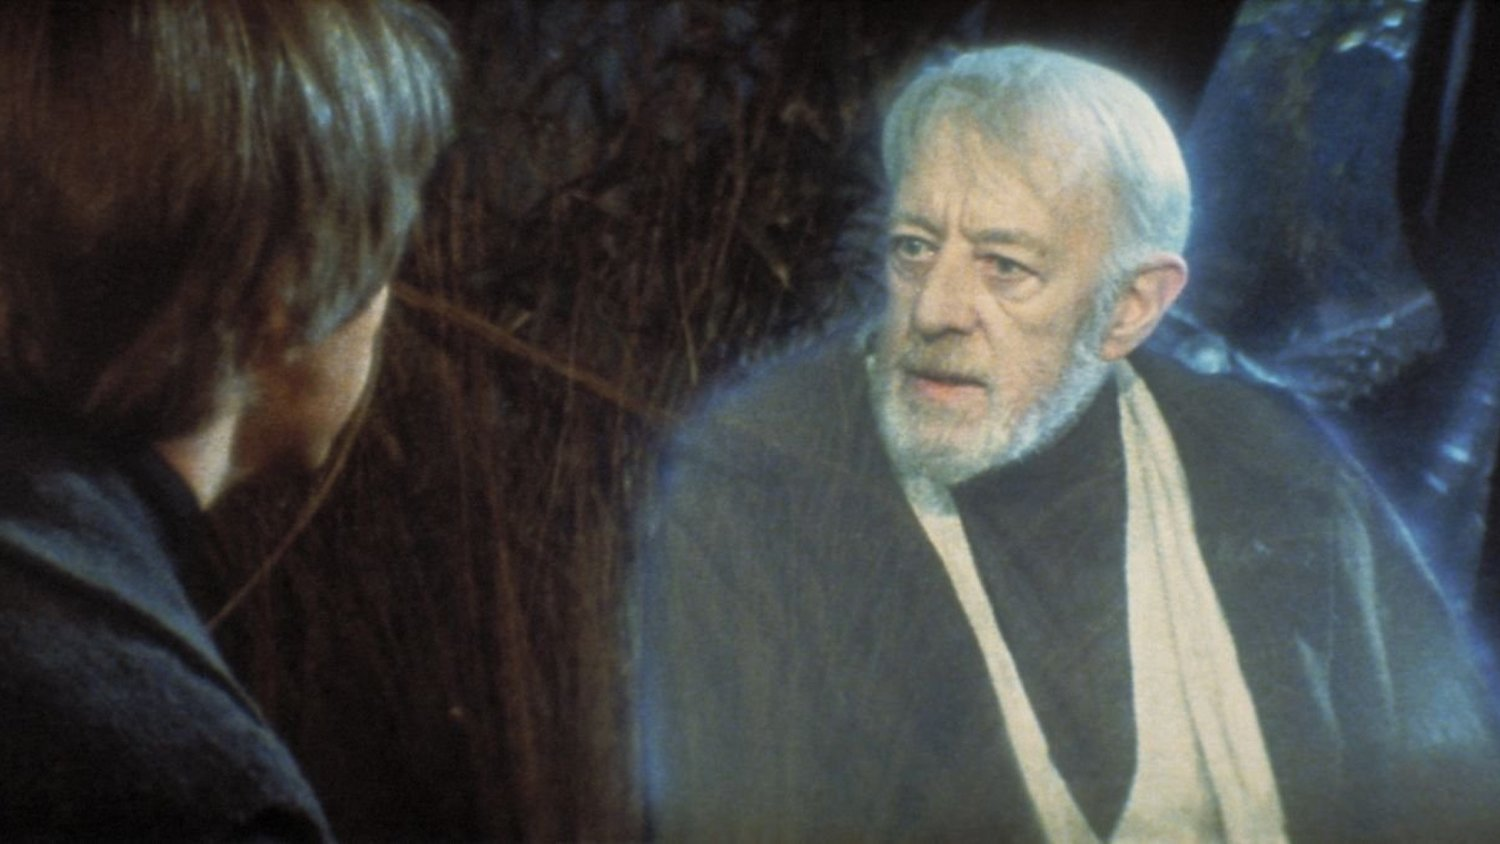 Obi-Wan Kenobi Quoted Jedi Scripture When Lying to Luke Skywalker About his Father